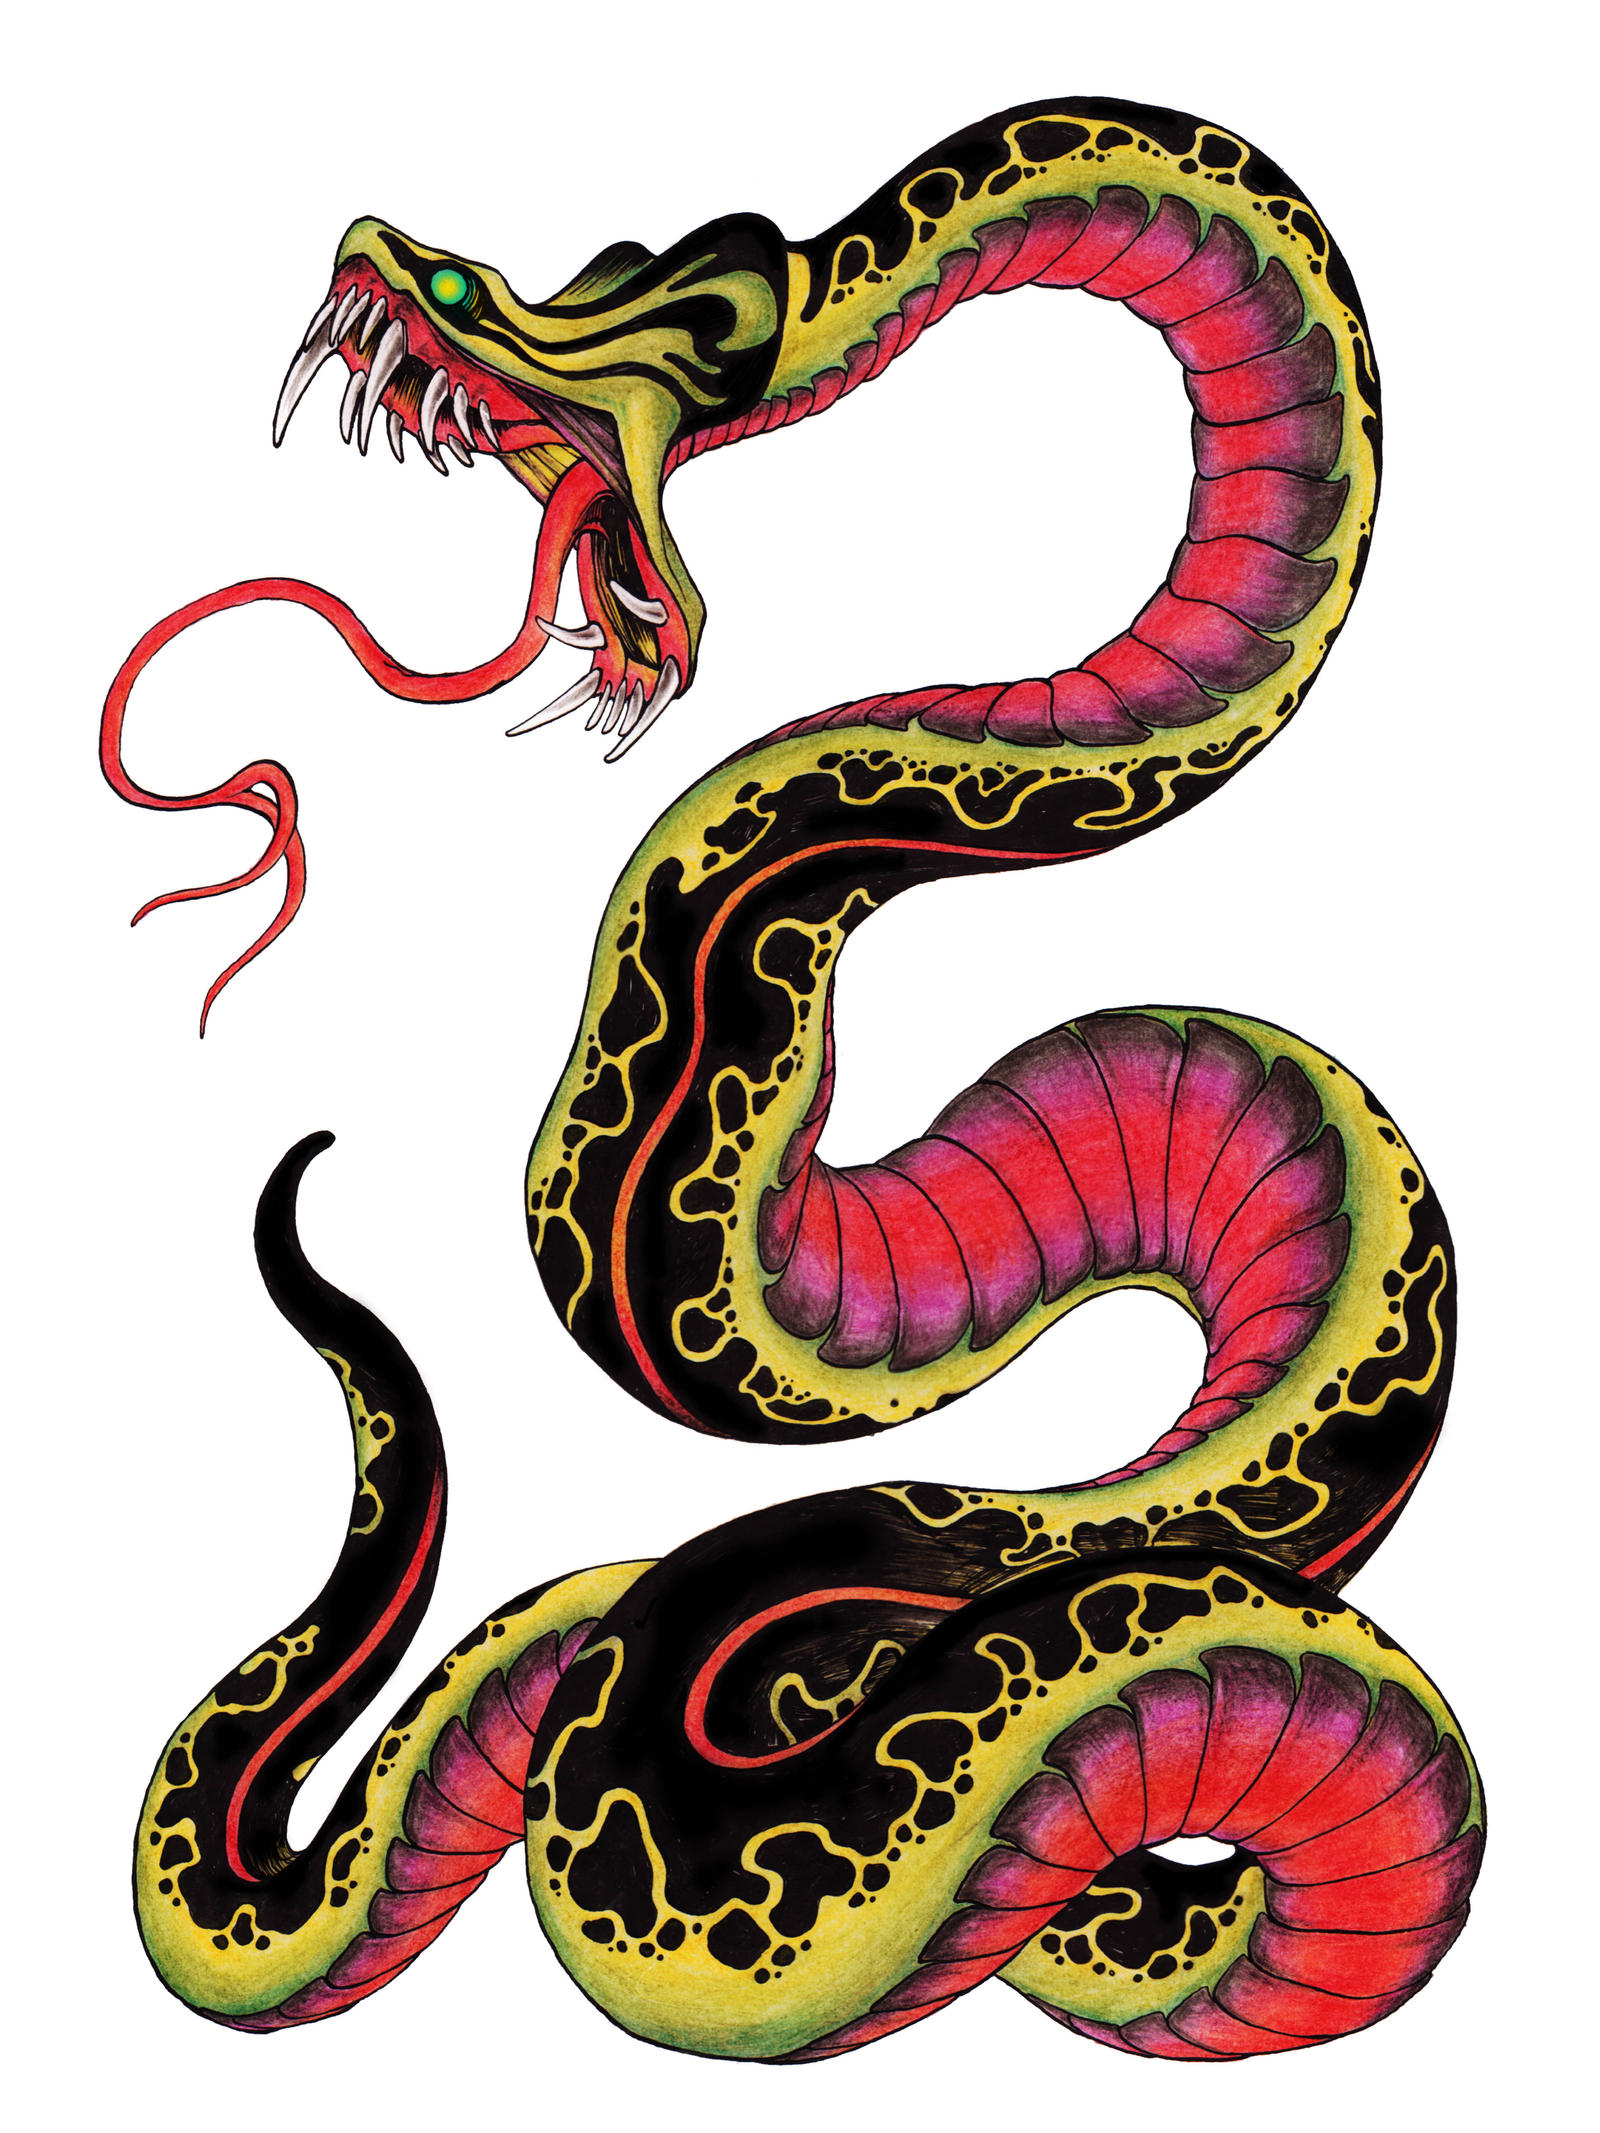 snake tattoo design by burke5 designs interfaces tattoo design 2013 ...